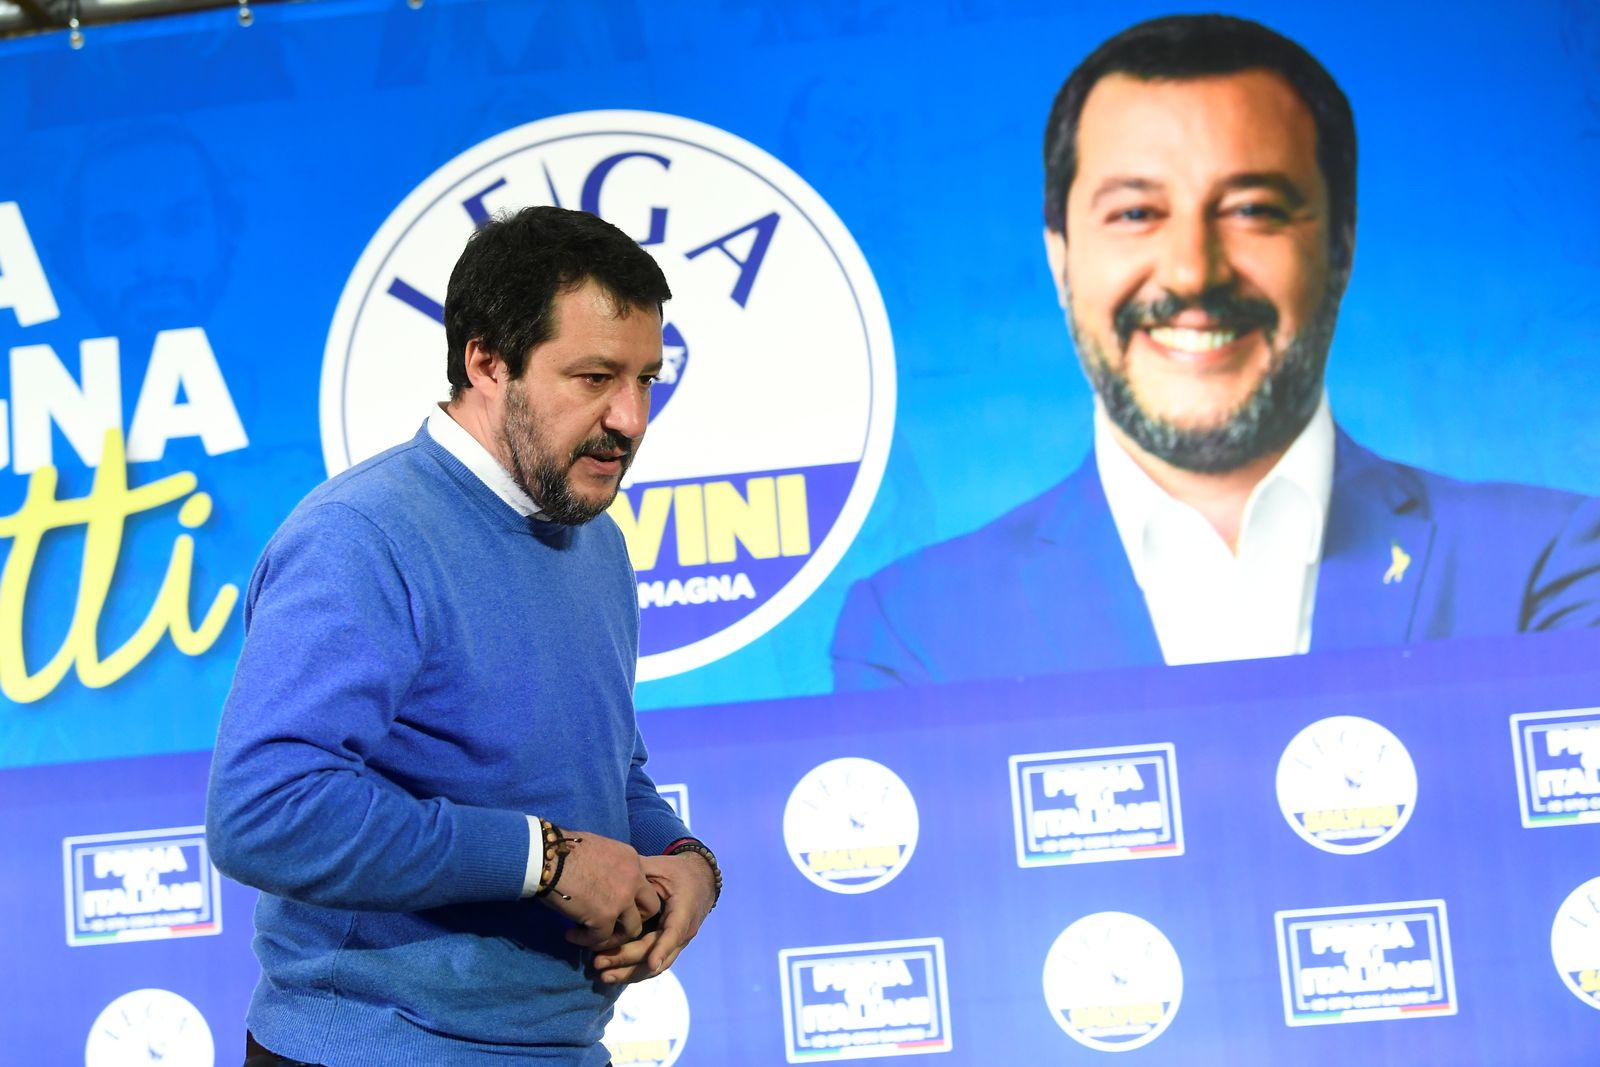 Leader of Italy's far-right League party Matteo Salvini leaves after speaking to the media after polls close for the Emilia-Romagna regional election, in Bologna